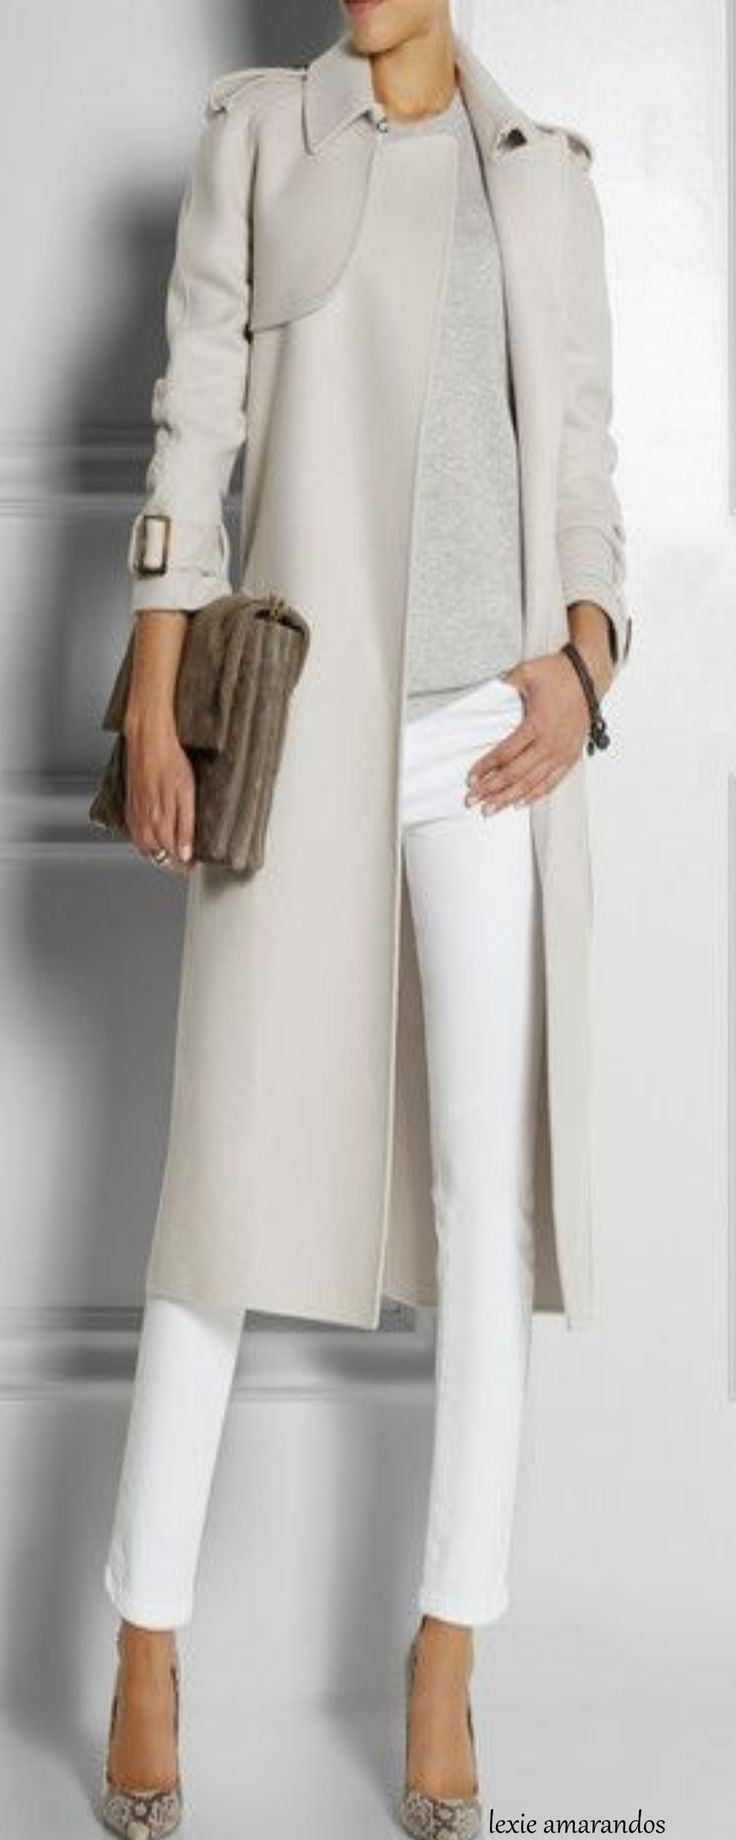 This outfit is so simple and elegant!